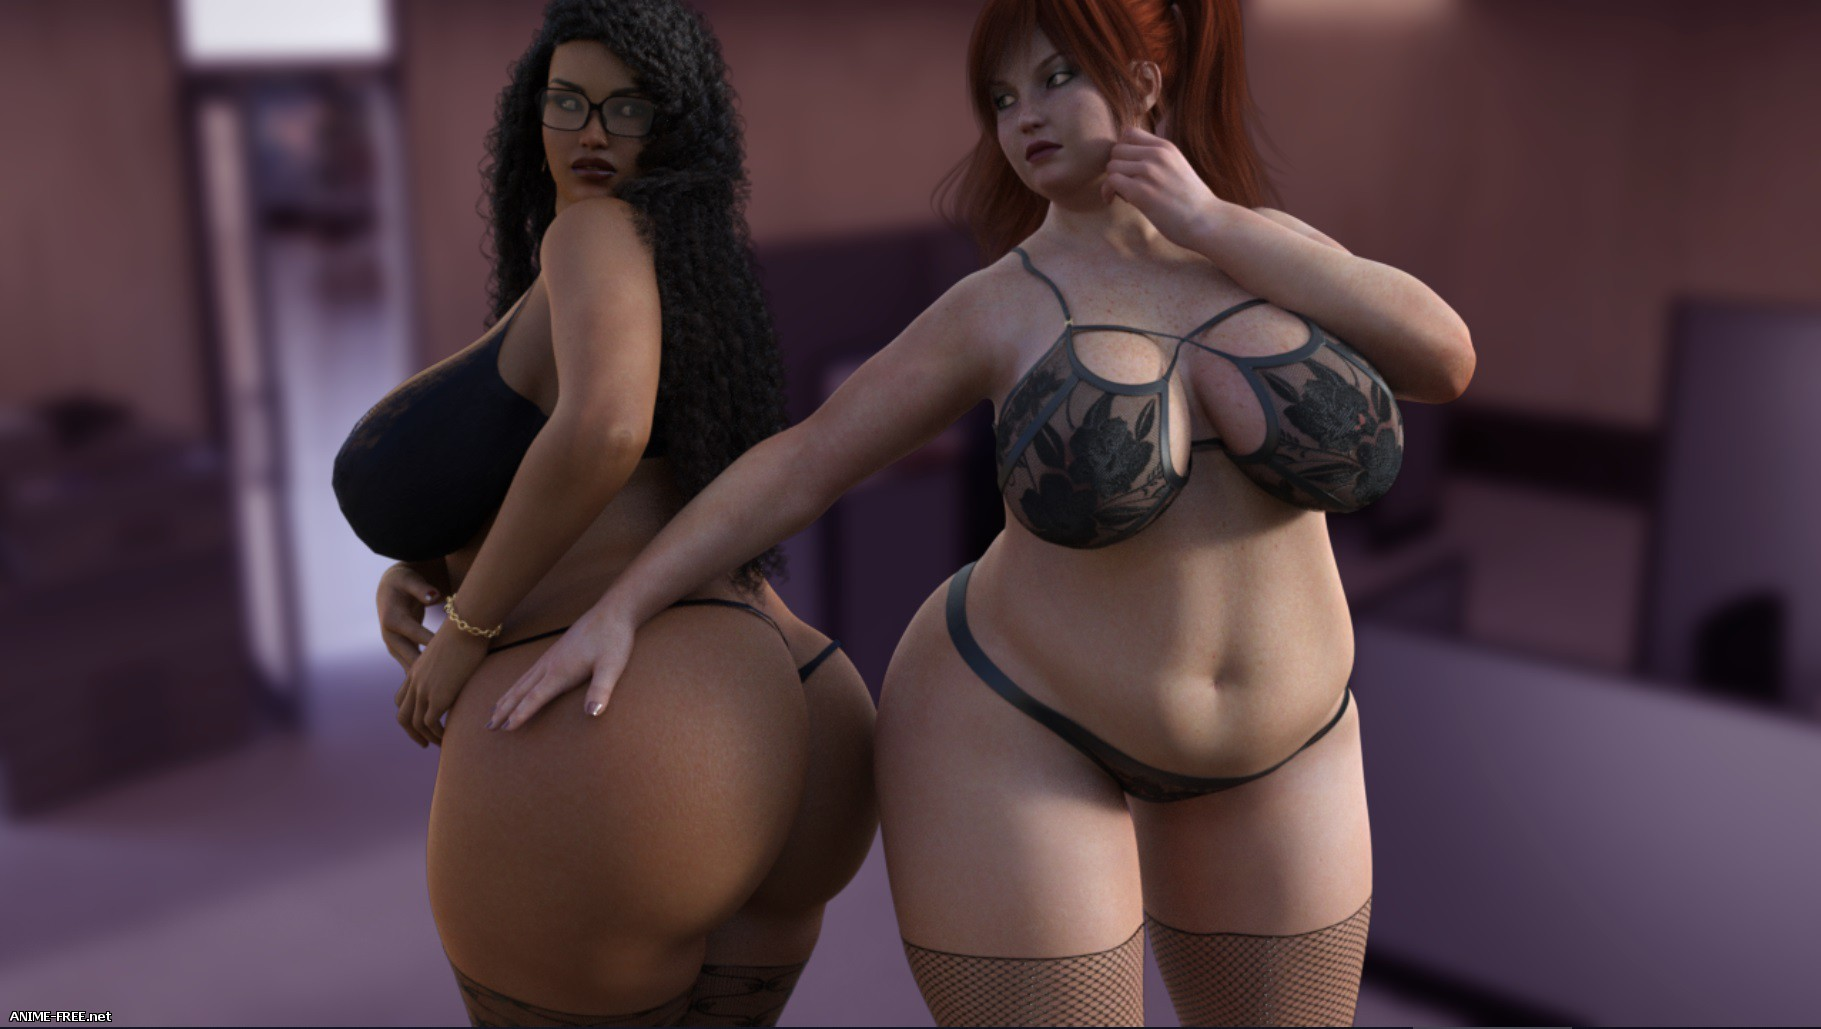 Plump City (My Plump Mom) / Plump City 2 - My Russian Holidays [2018] [Uncen] [ADV, 3DCG] [Android Compatible] [ENG,RUS] H-Game